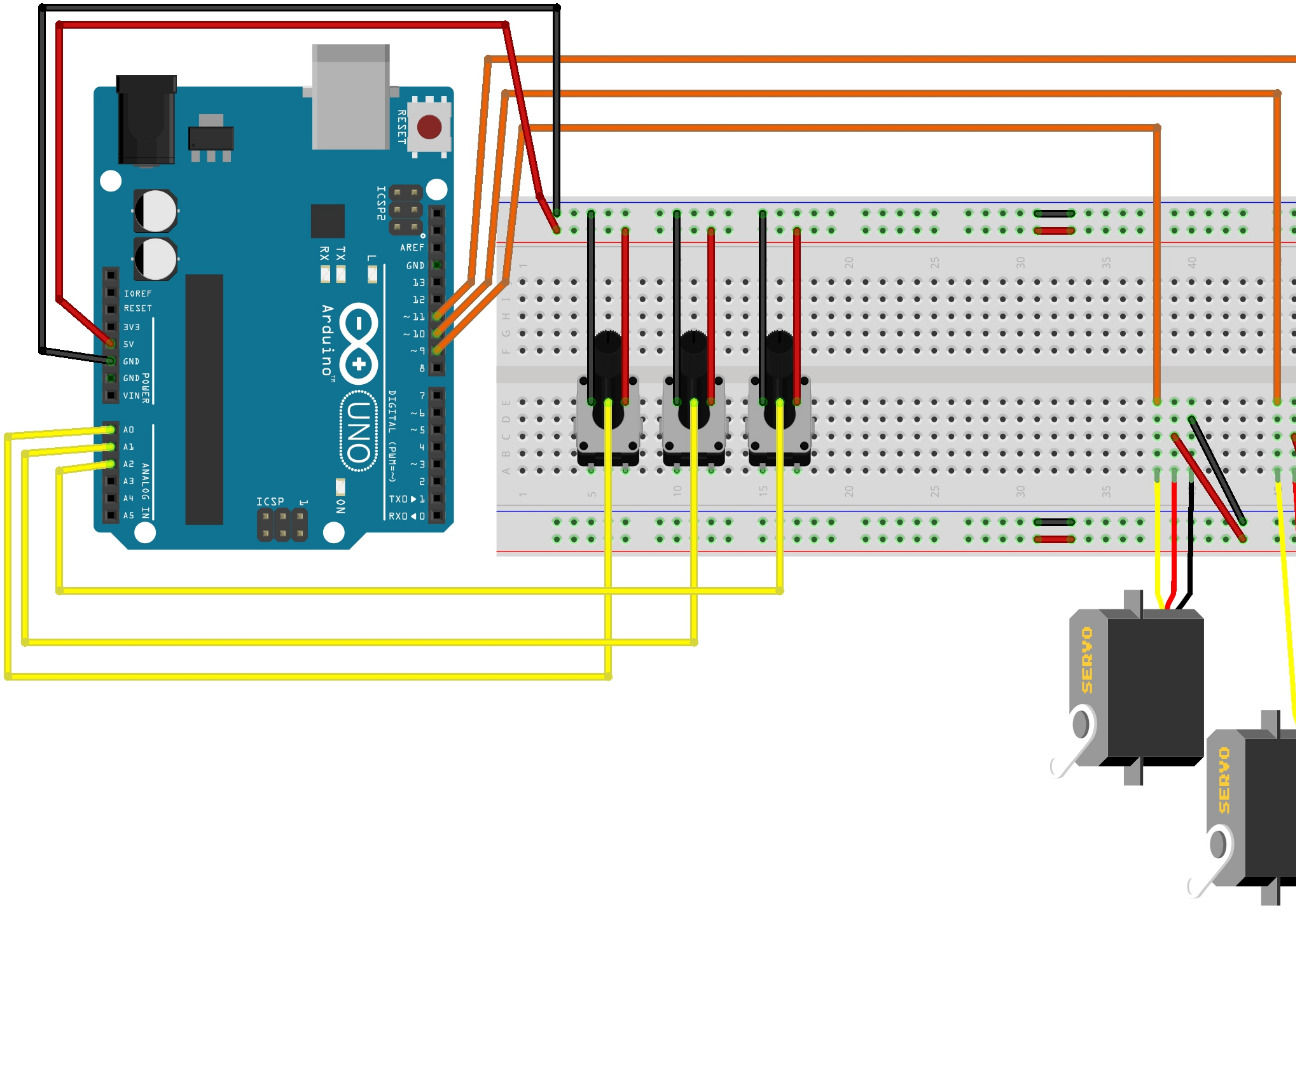 medium resolution of controlling 3 servo motors with 3 potentiometers and an arduino